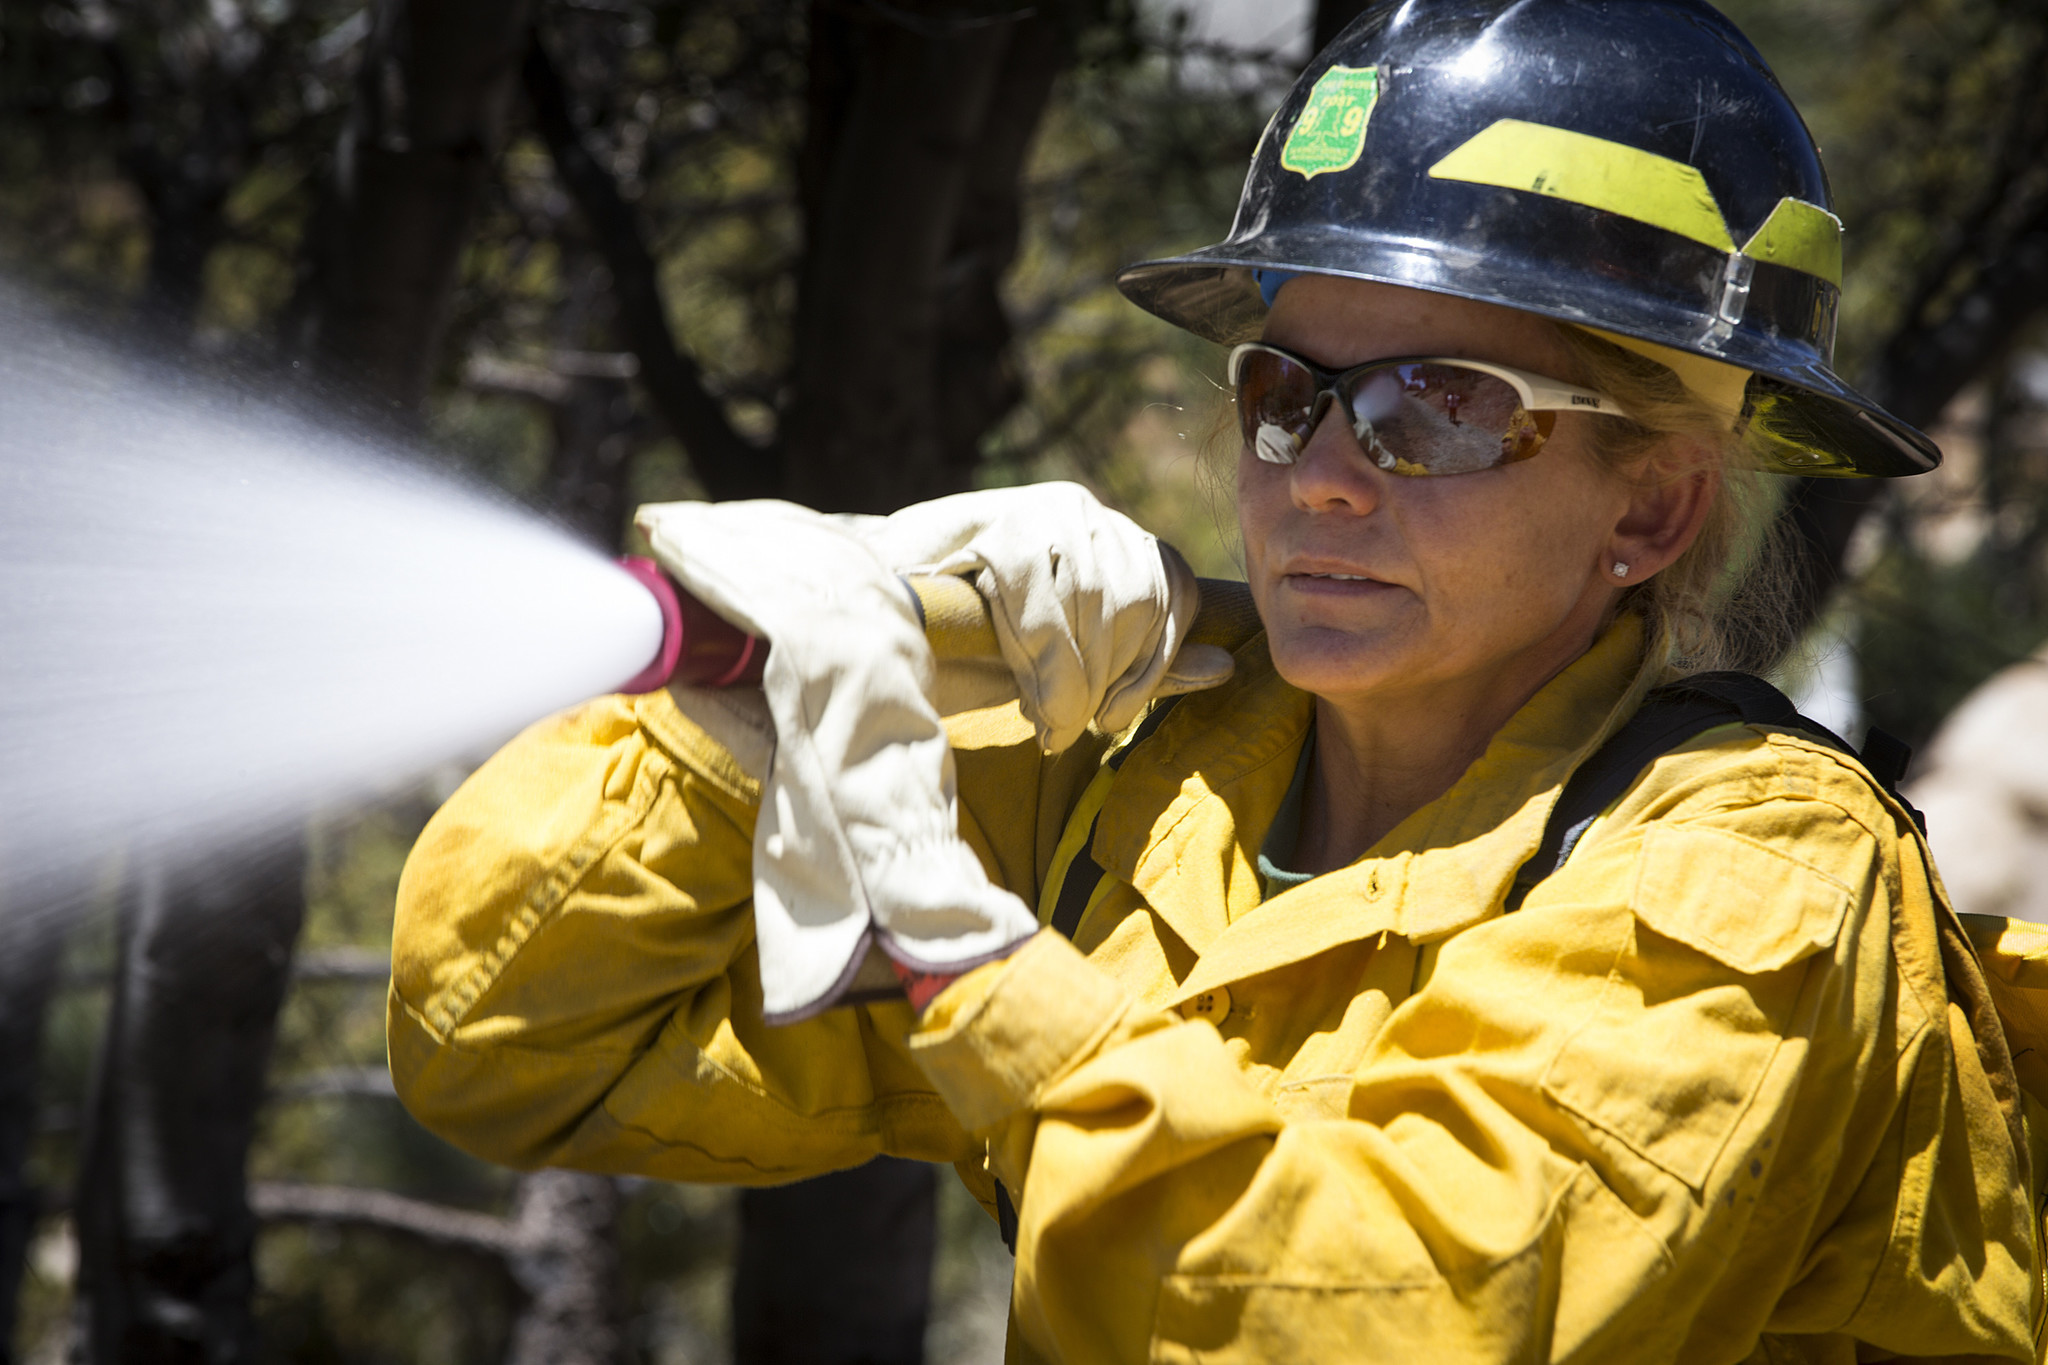 Yasmine Wolfe, a property manager from Sunland, operates a fire hose.